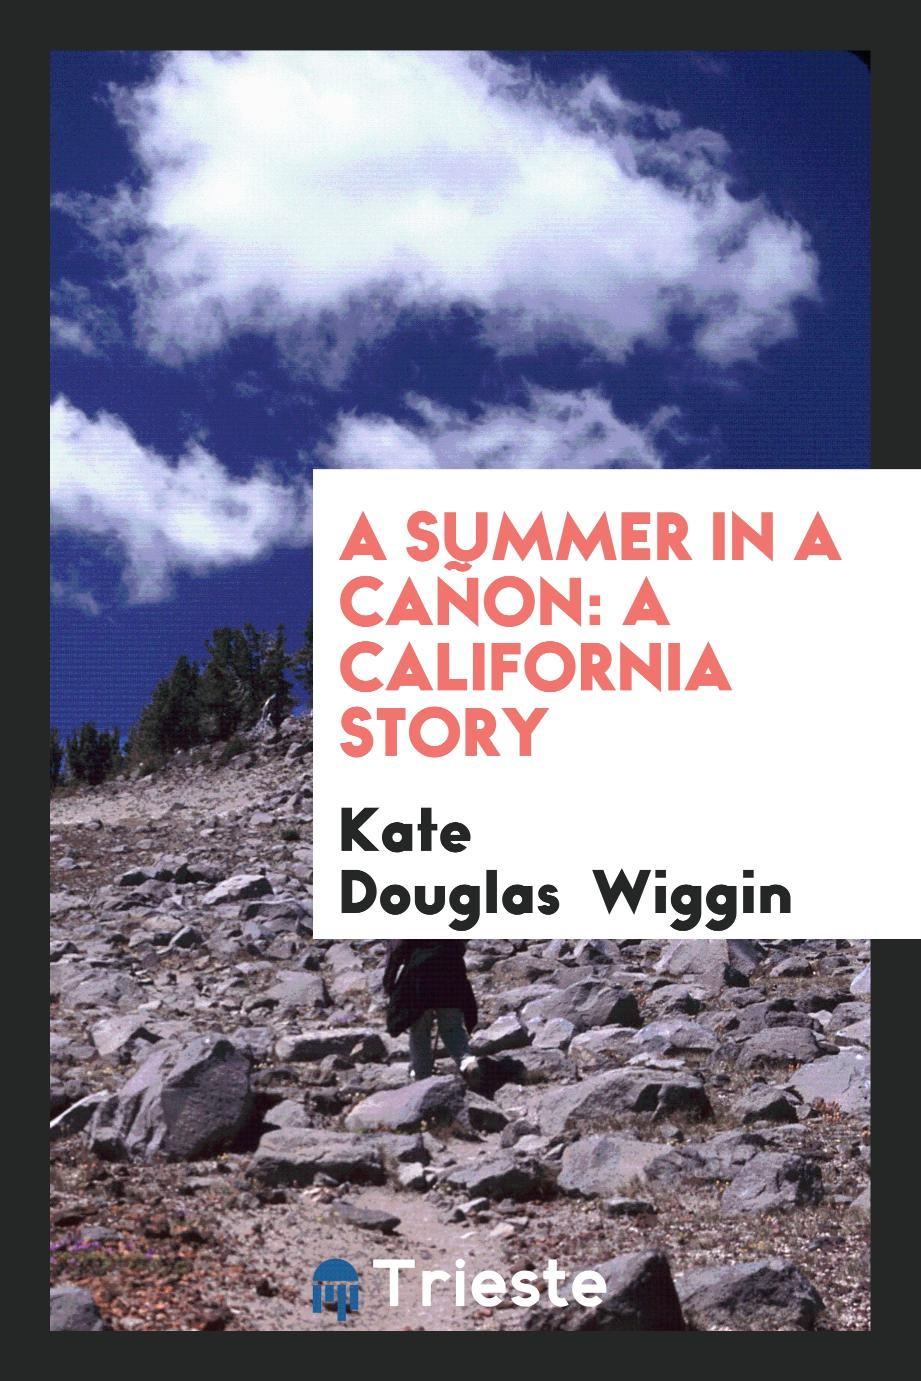 A summer in a cañon: a California story